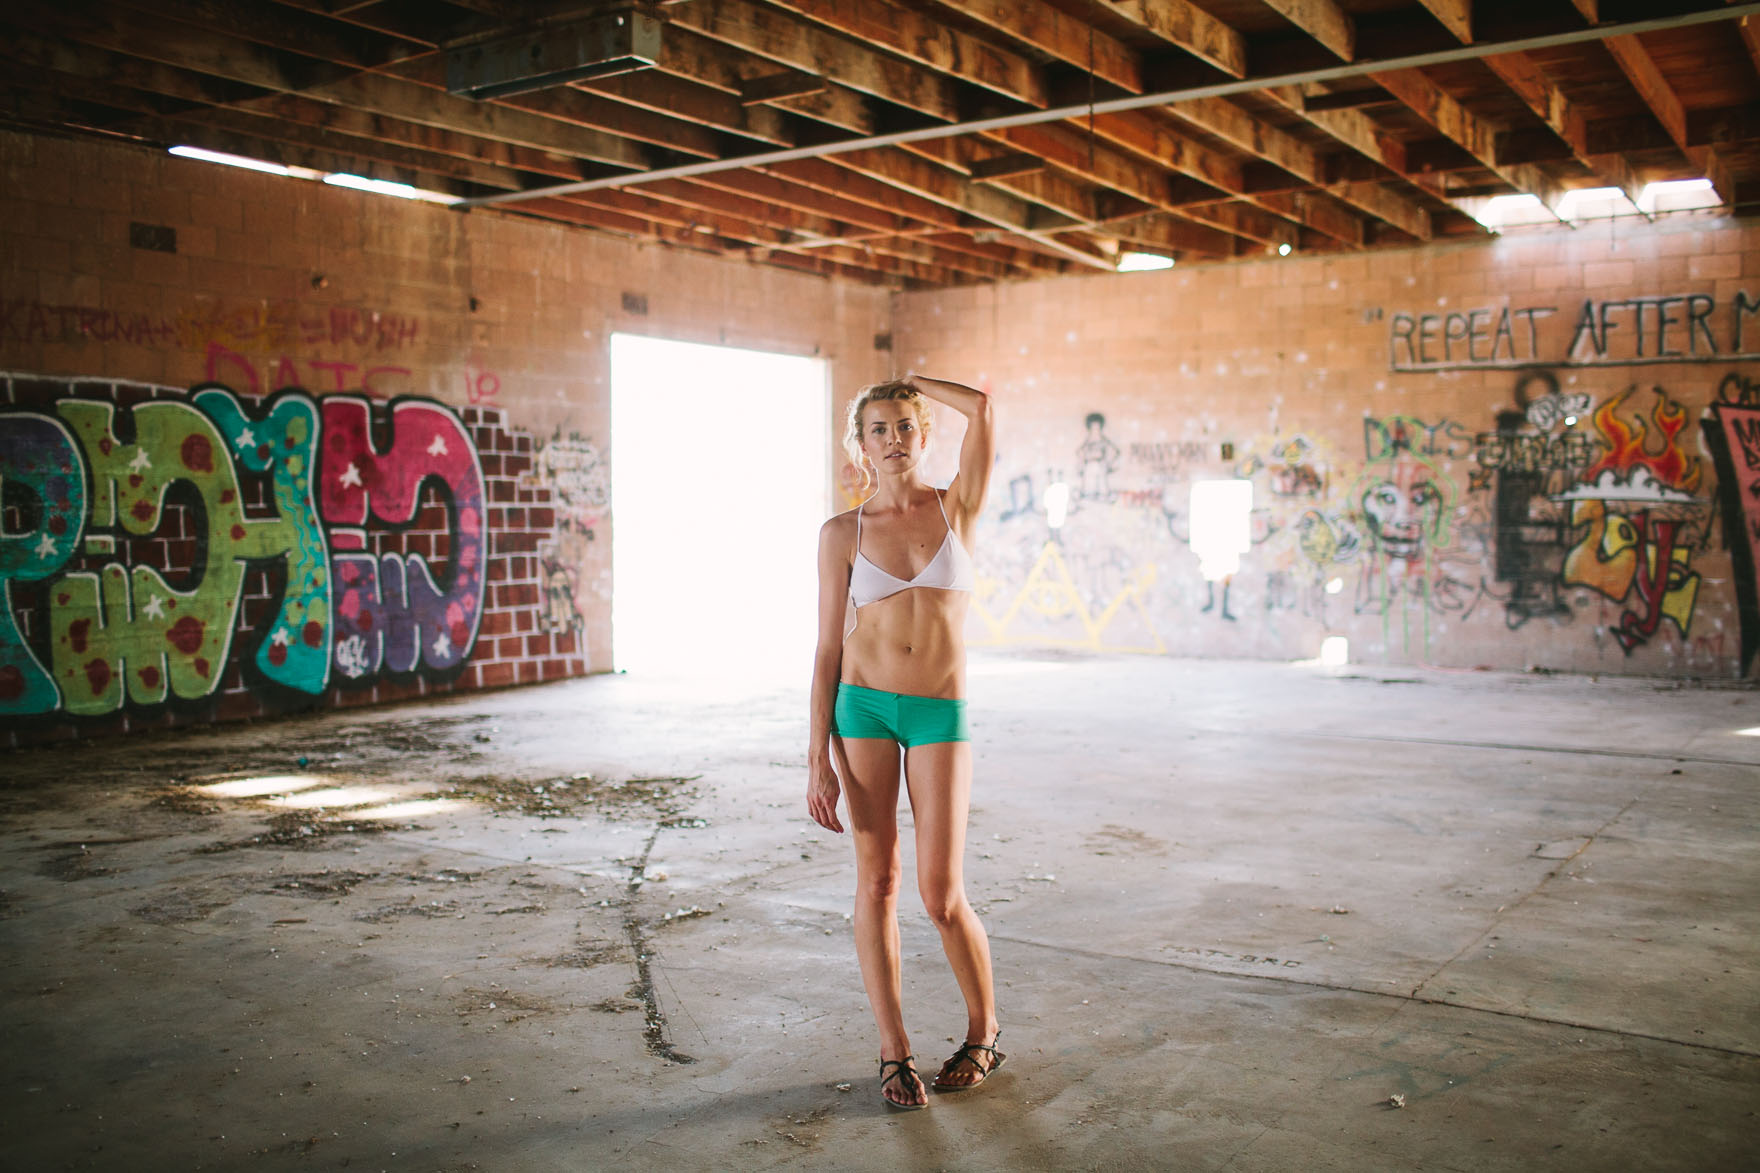 Abandoned Magical Fashion Editorial – Photo by Let's Frolic Together